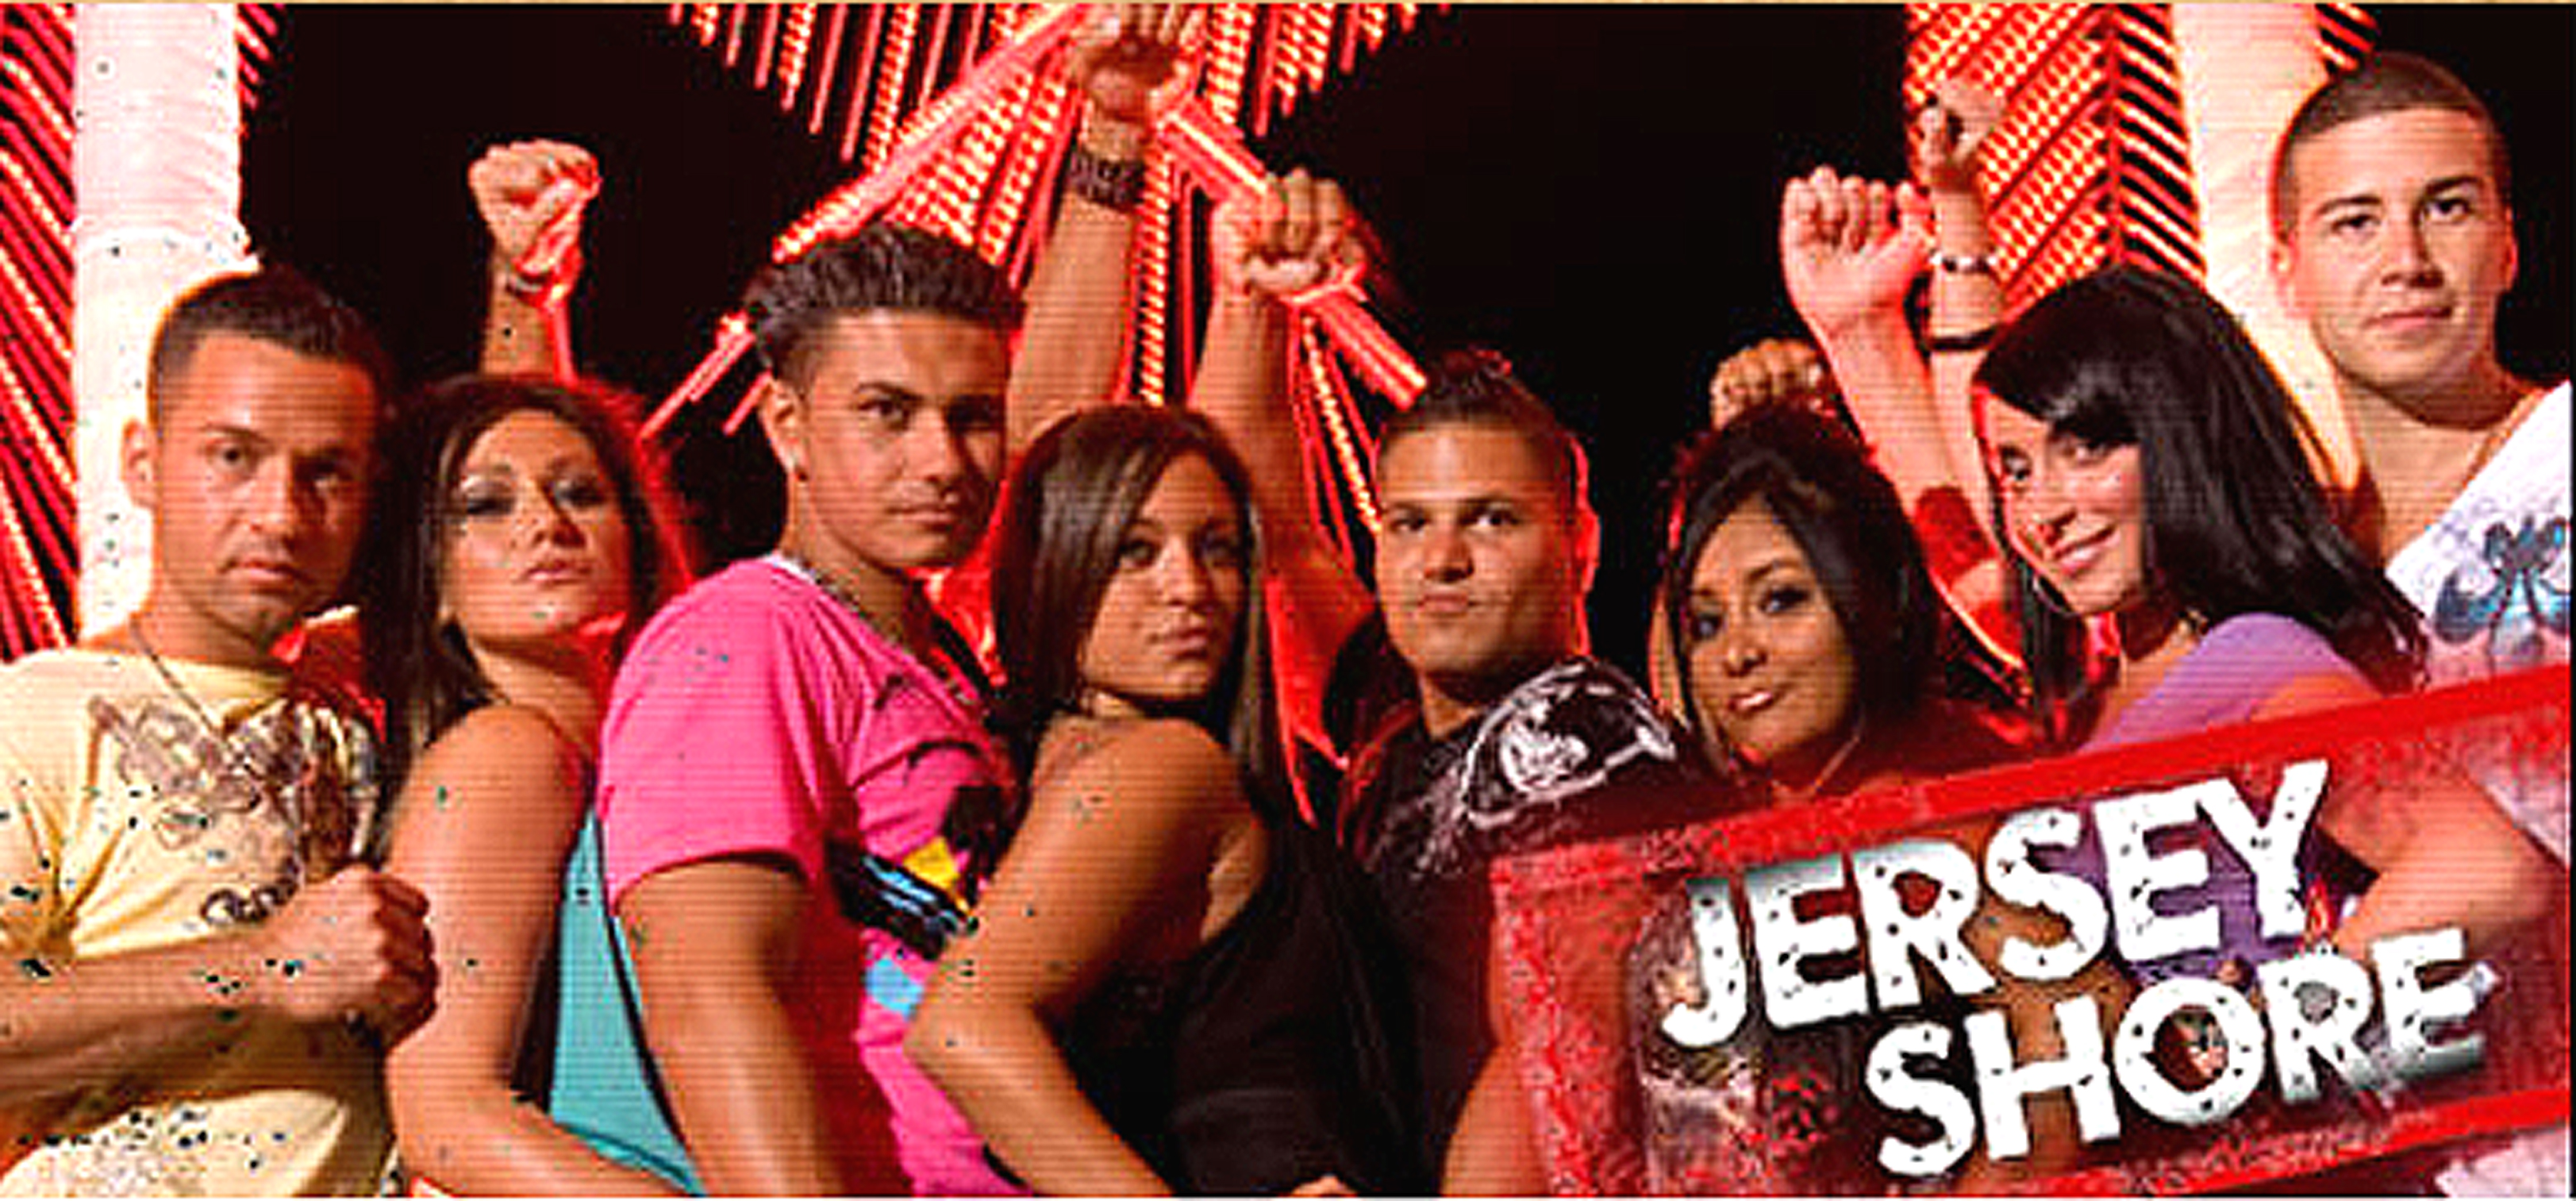 sex real jersy shore